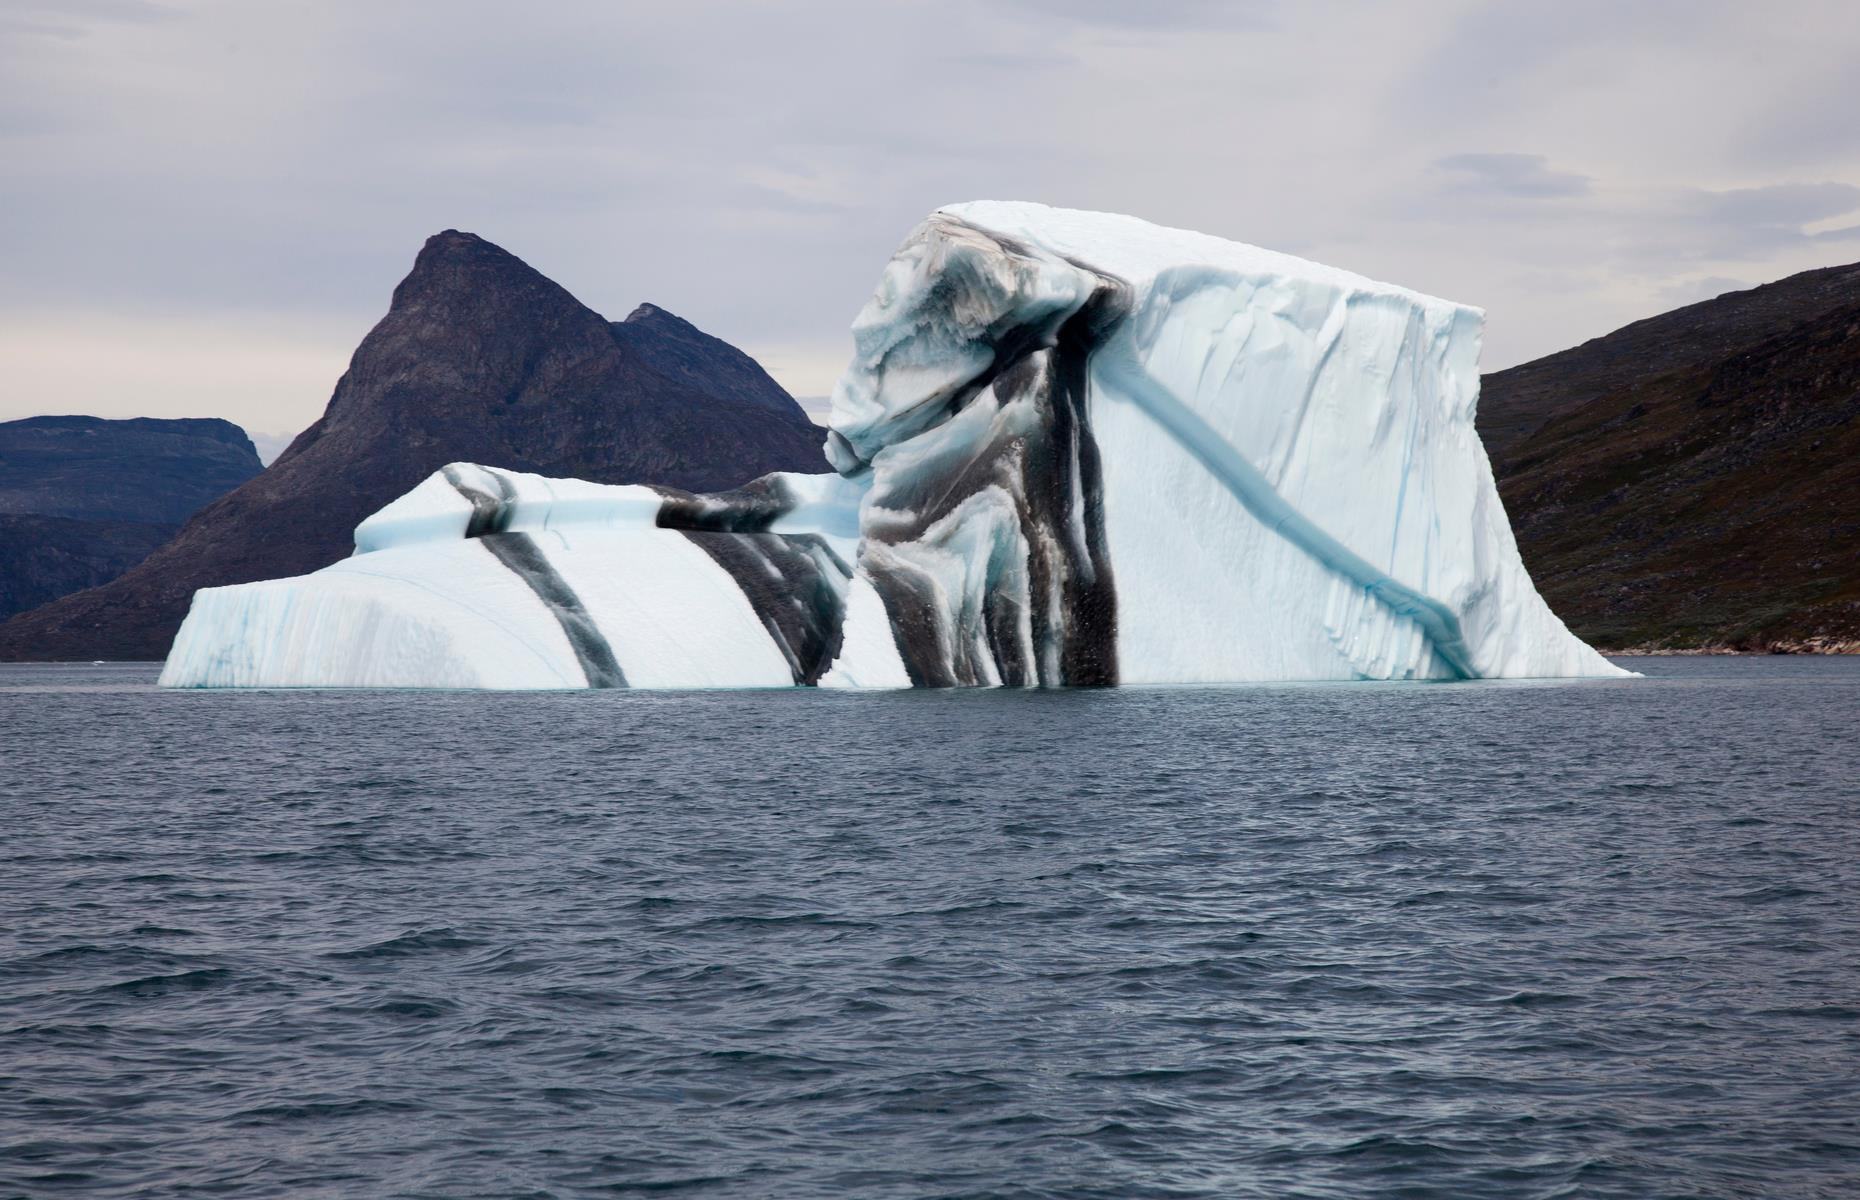 Slide 10 of 37: As if icebergs weren't awesome enough already, throw in some stripes and marbling, and they're almost too dazzling. The patterns form when cracks appear in the icy mass and are flooded with seawater that freezes.